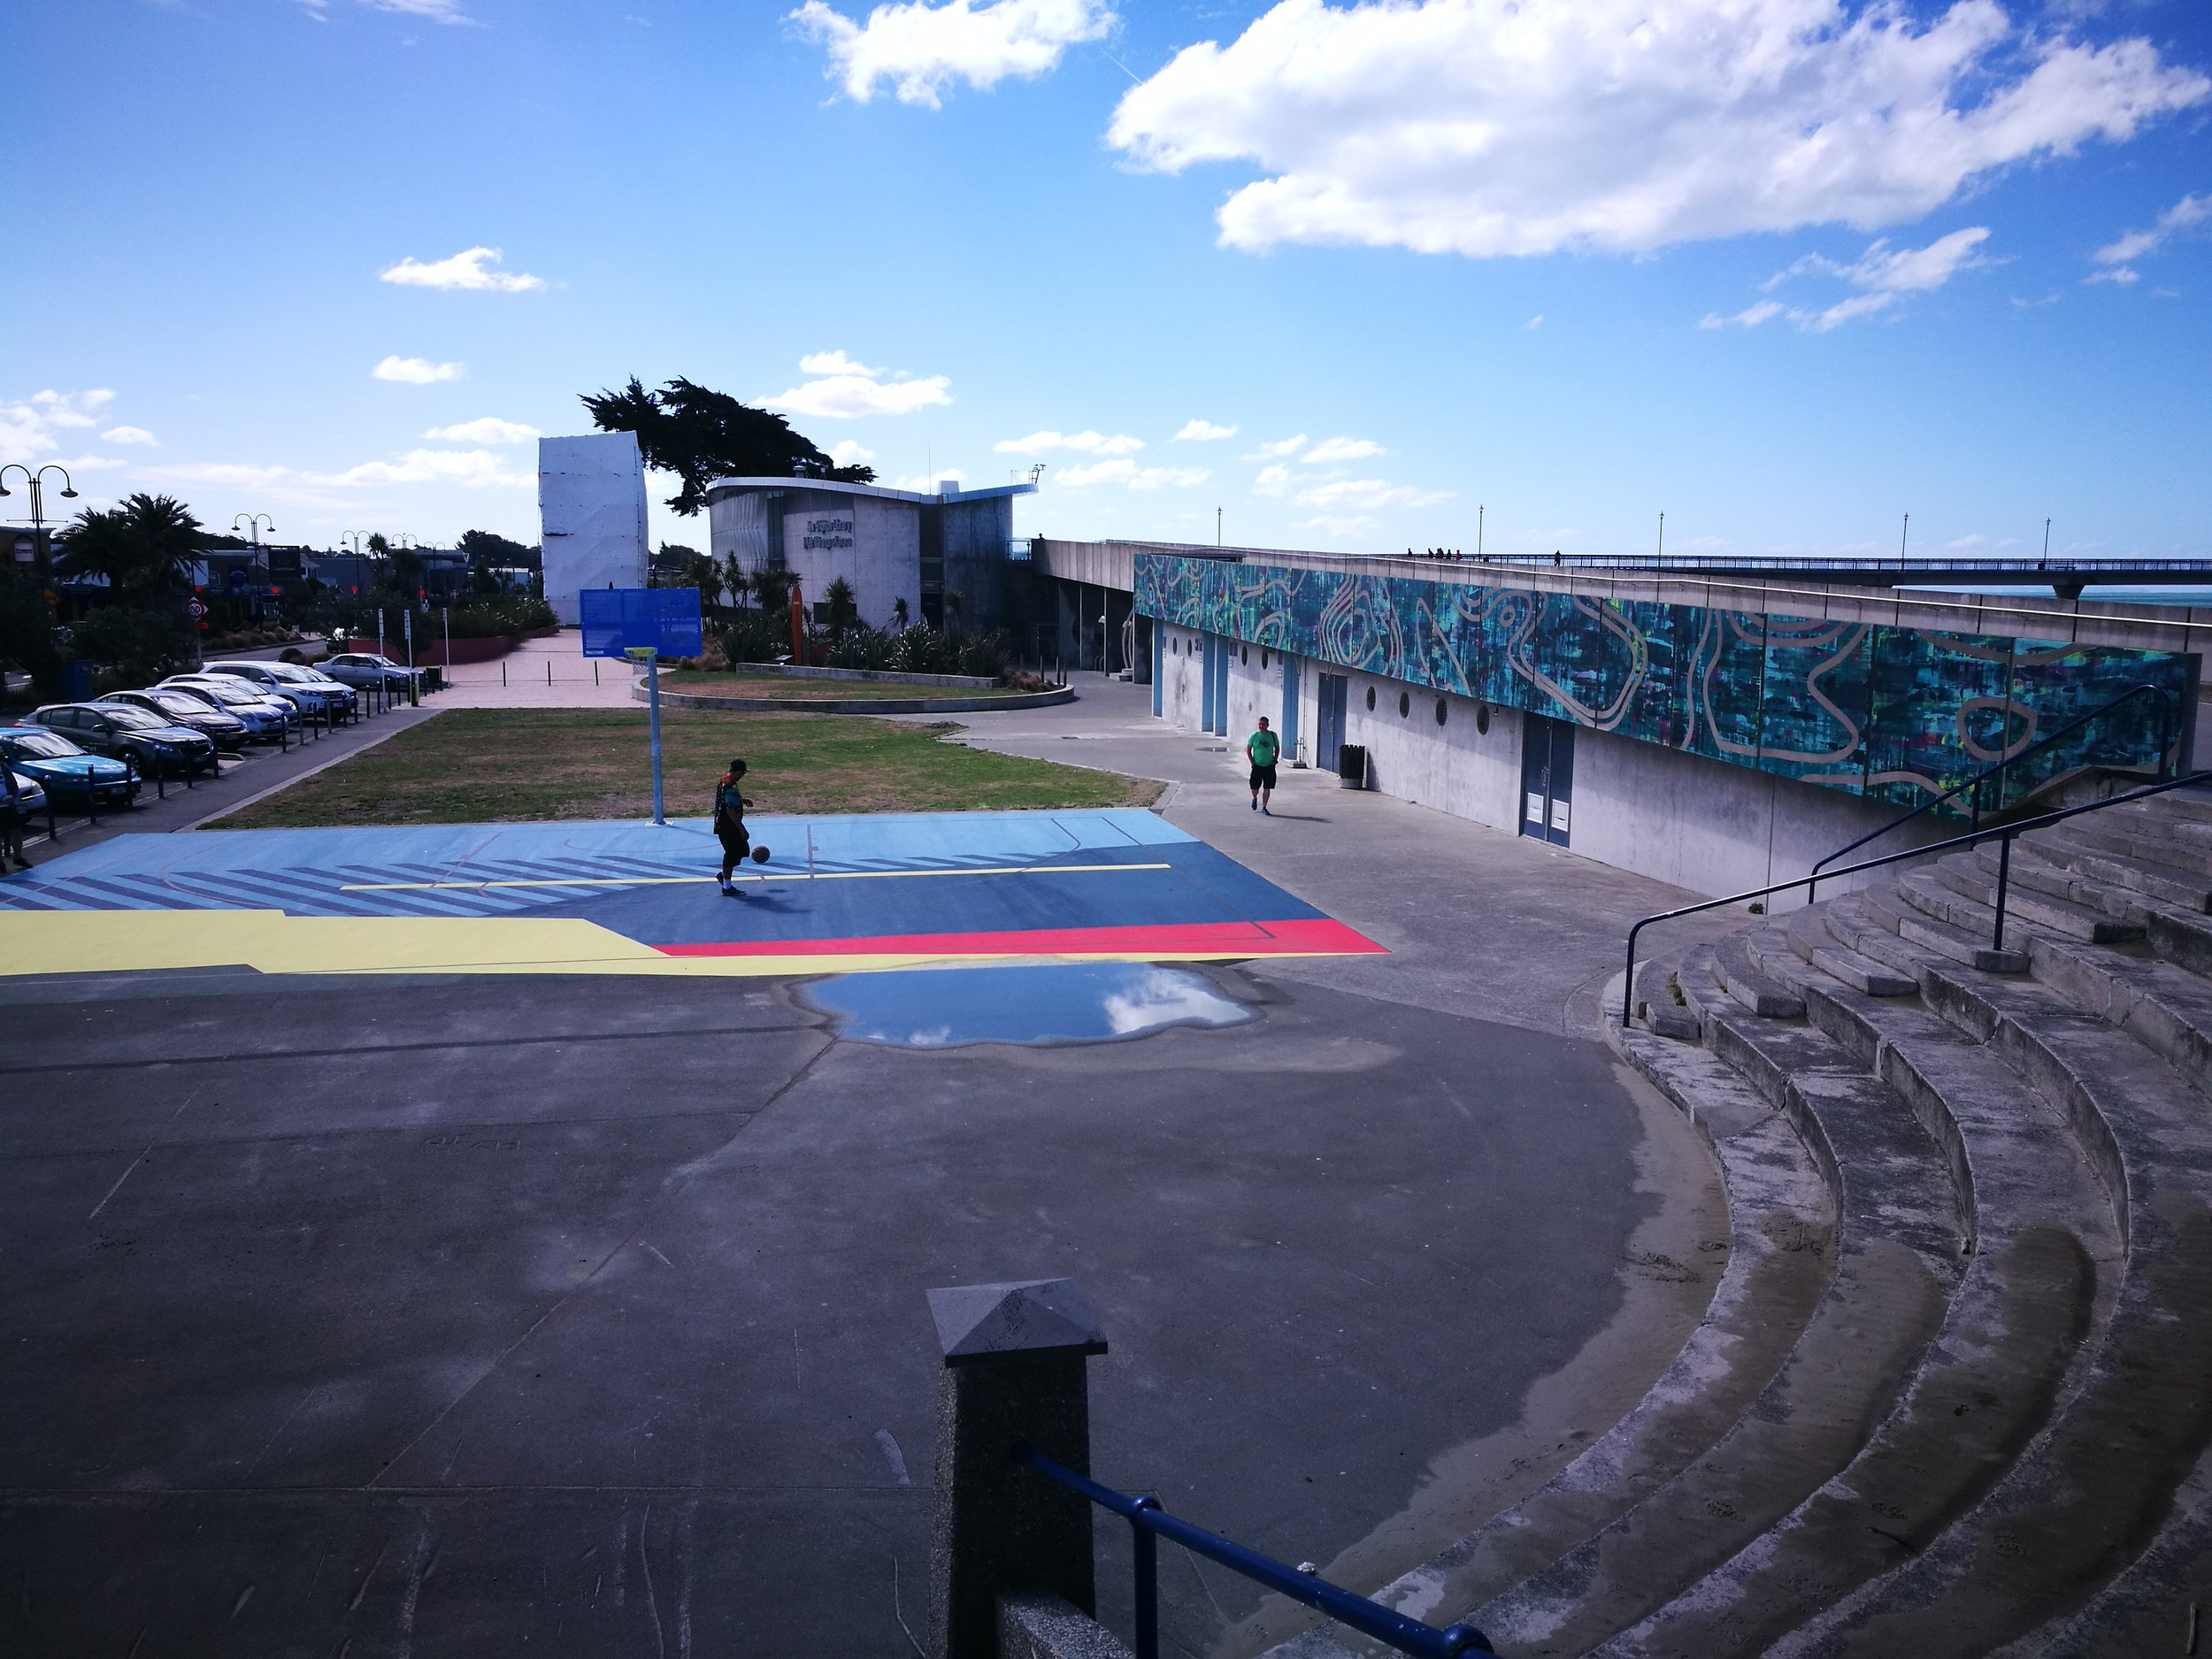 The completed Re:ACTIVATE 2018: New Brighton artworks. Basketball court surface – Nathan Ingram  FORCES  2018. Wall mural – Josh O'Rourke  Low Pressure High Pressure  2018. Image courtesy of the artist and SCAPE Public Art. Photo by Reuben Woods.